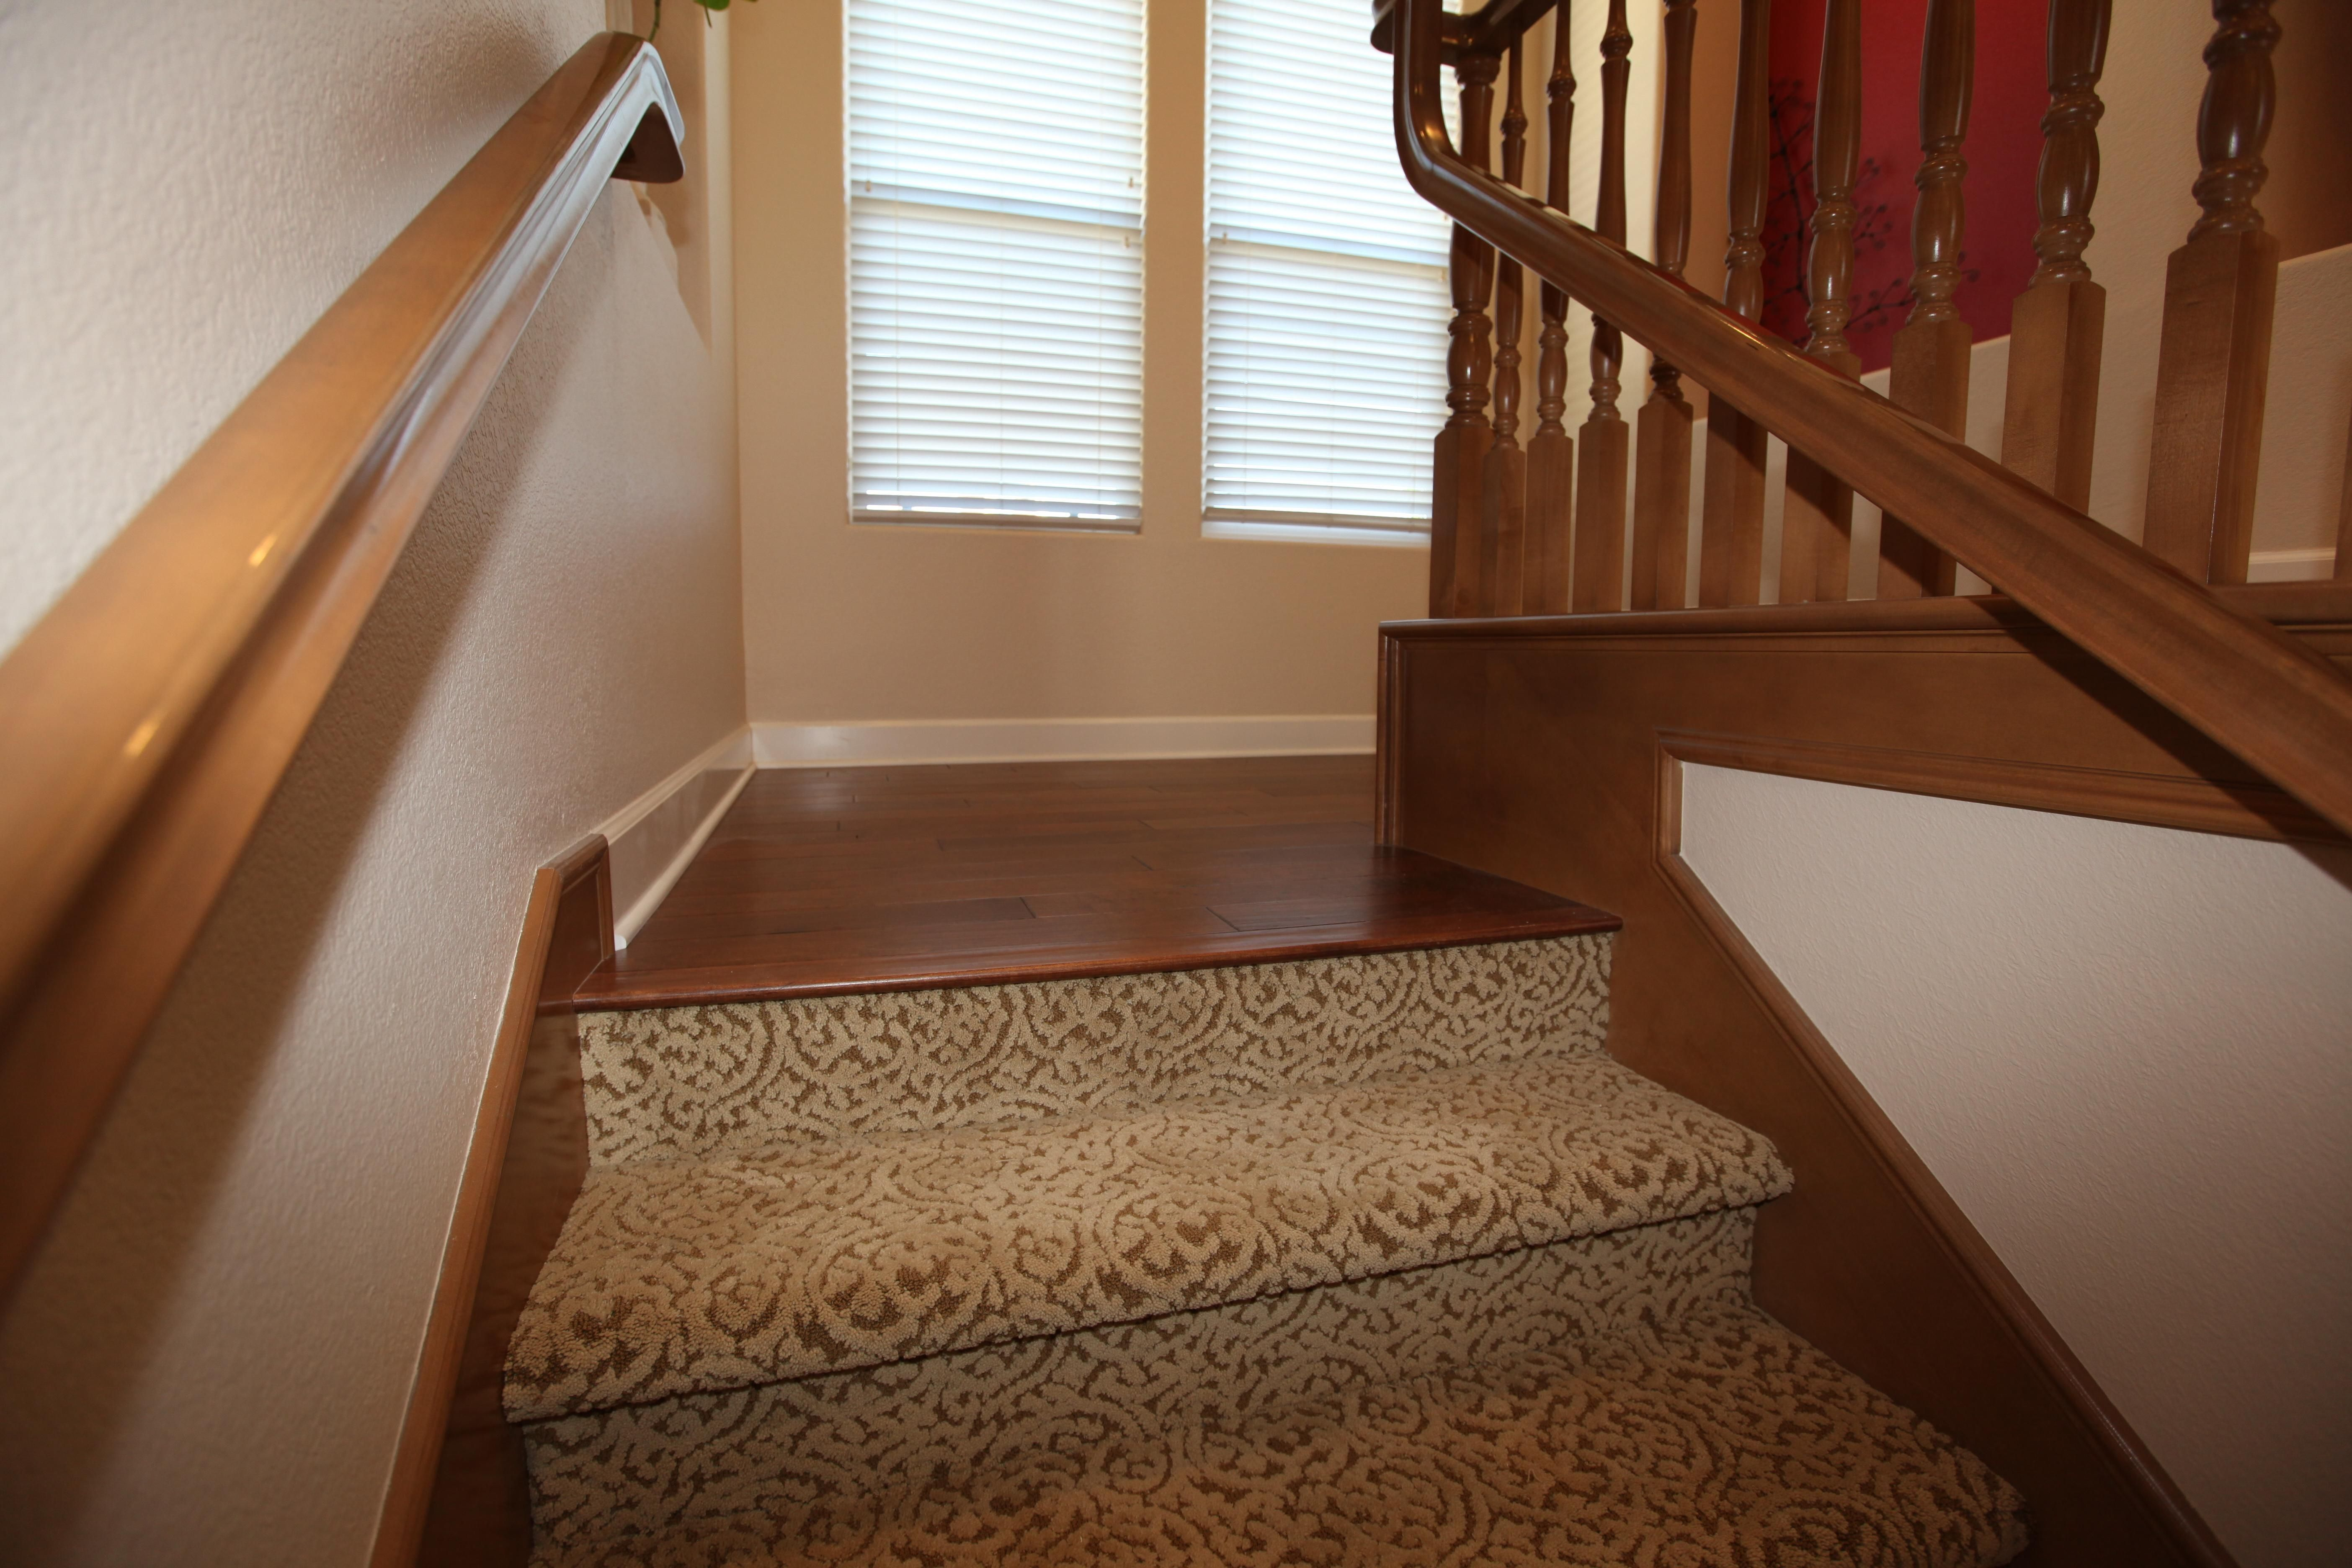 Carpet Stairs To Wood Floor Transition Flooring Is The Most | Best Wood To Use For Stair Treads | Oak | Stair Stringers | Carpet Treads | Stair Nosing | Stringers